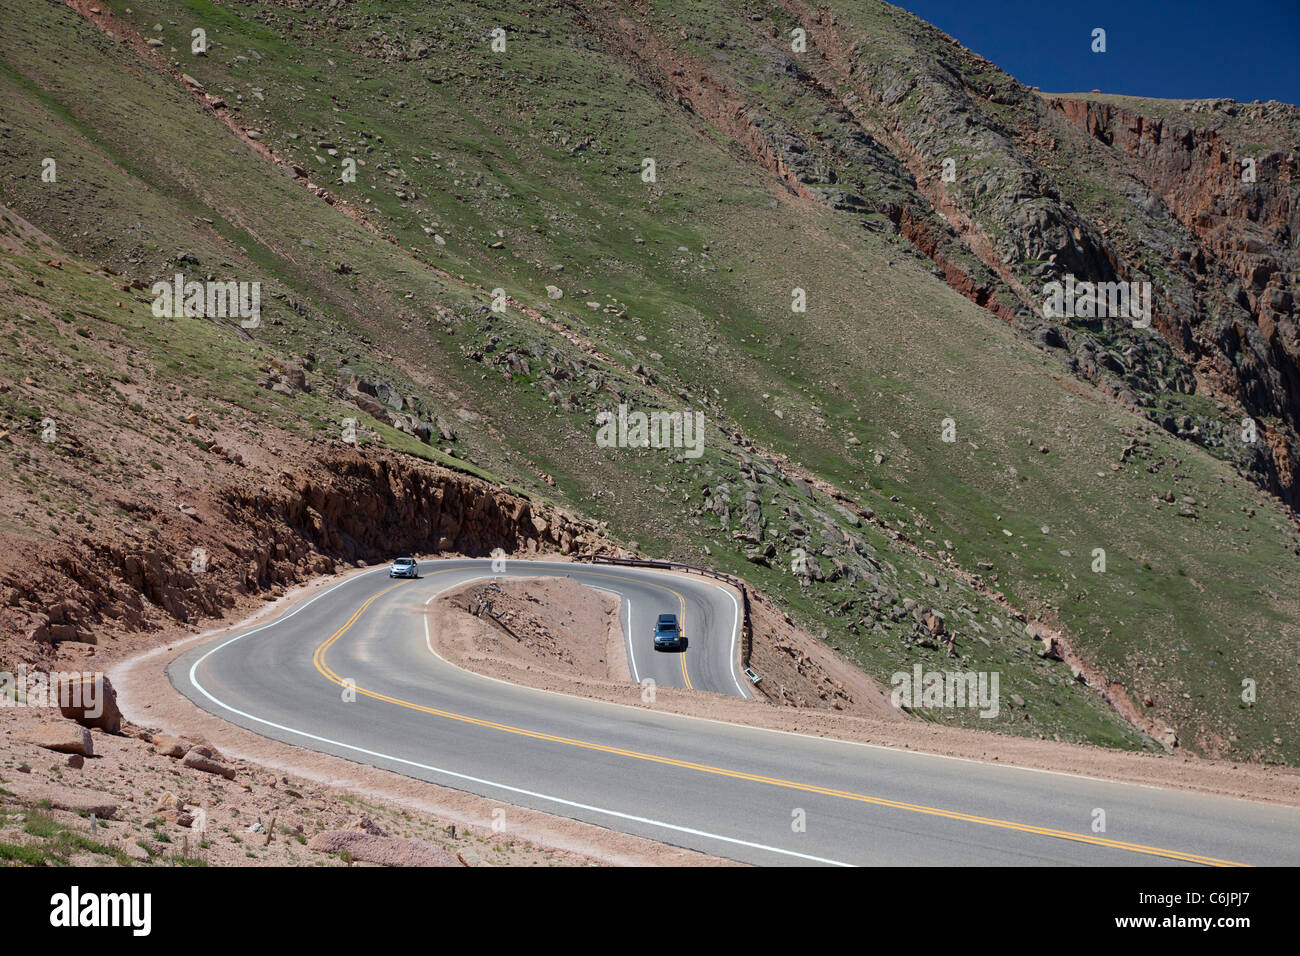 Rocky Mountain Auto >> Colorado Springs, Colorado - Cars on the Pikes Peak Highway, a toll Stock Photo: 38521567 - Alamy